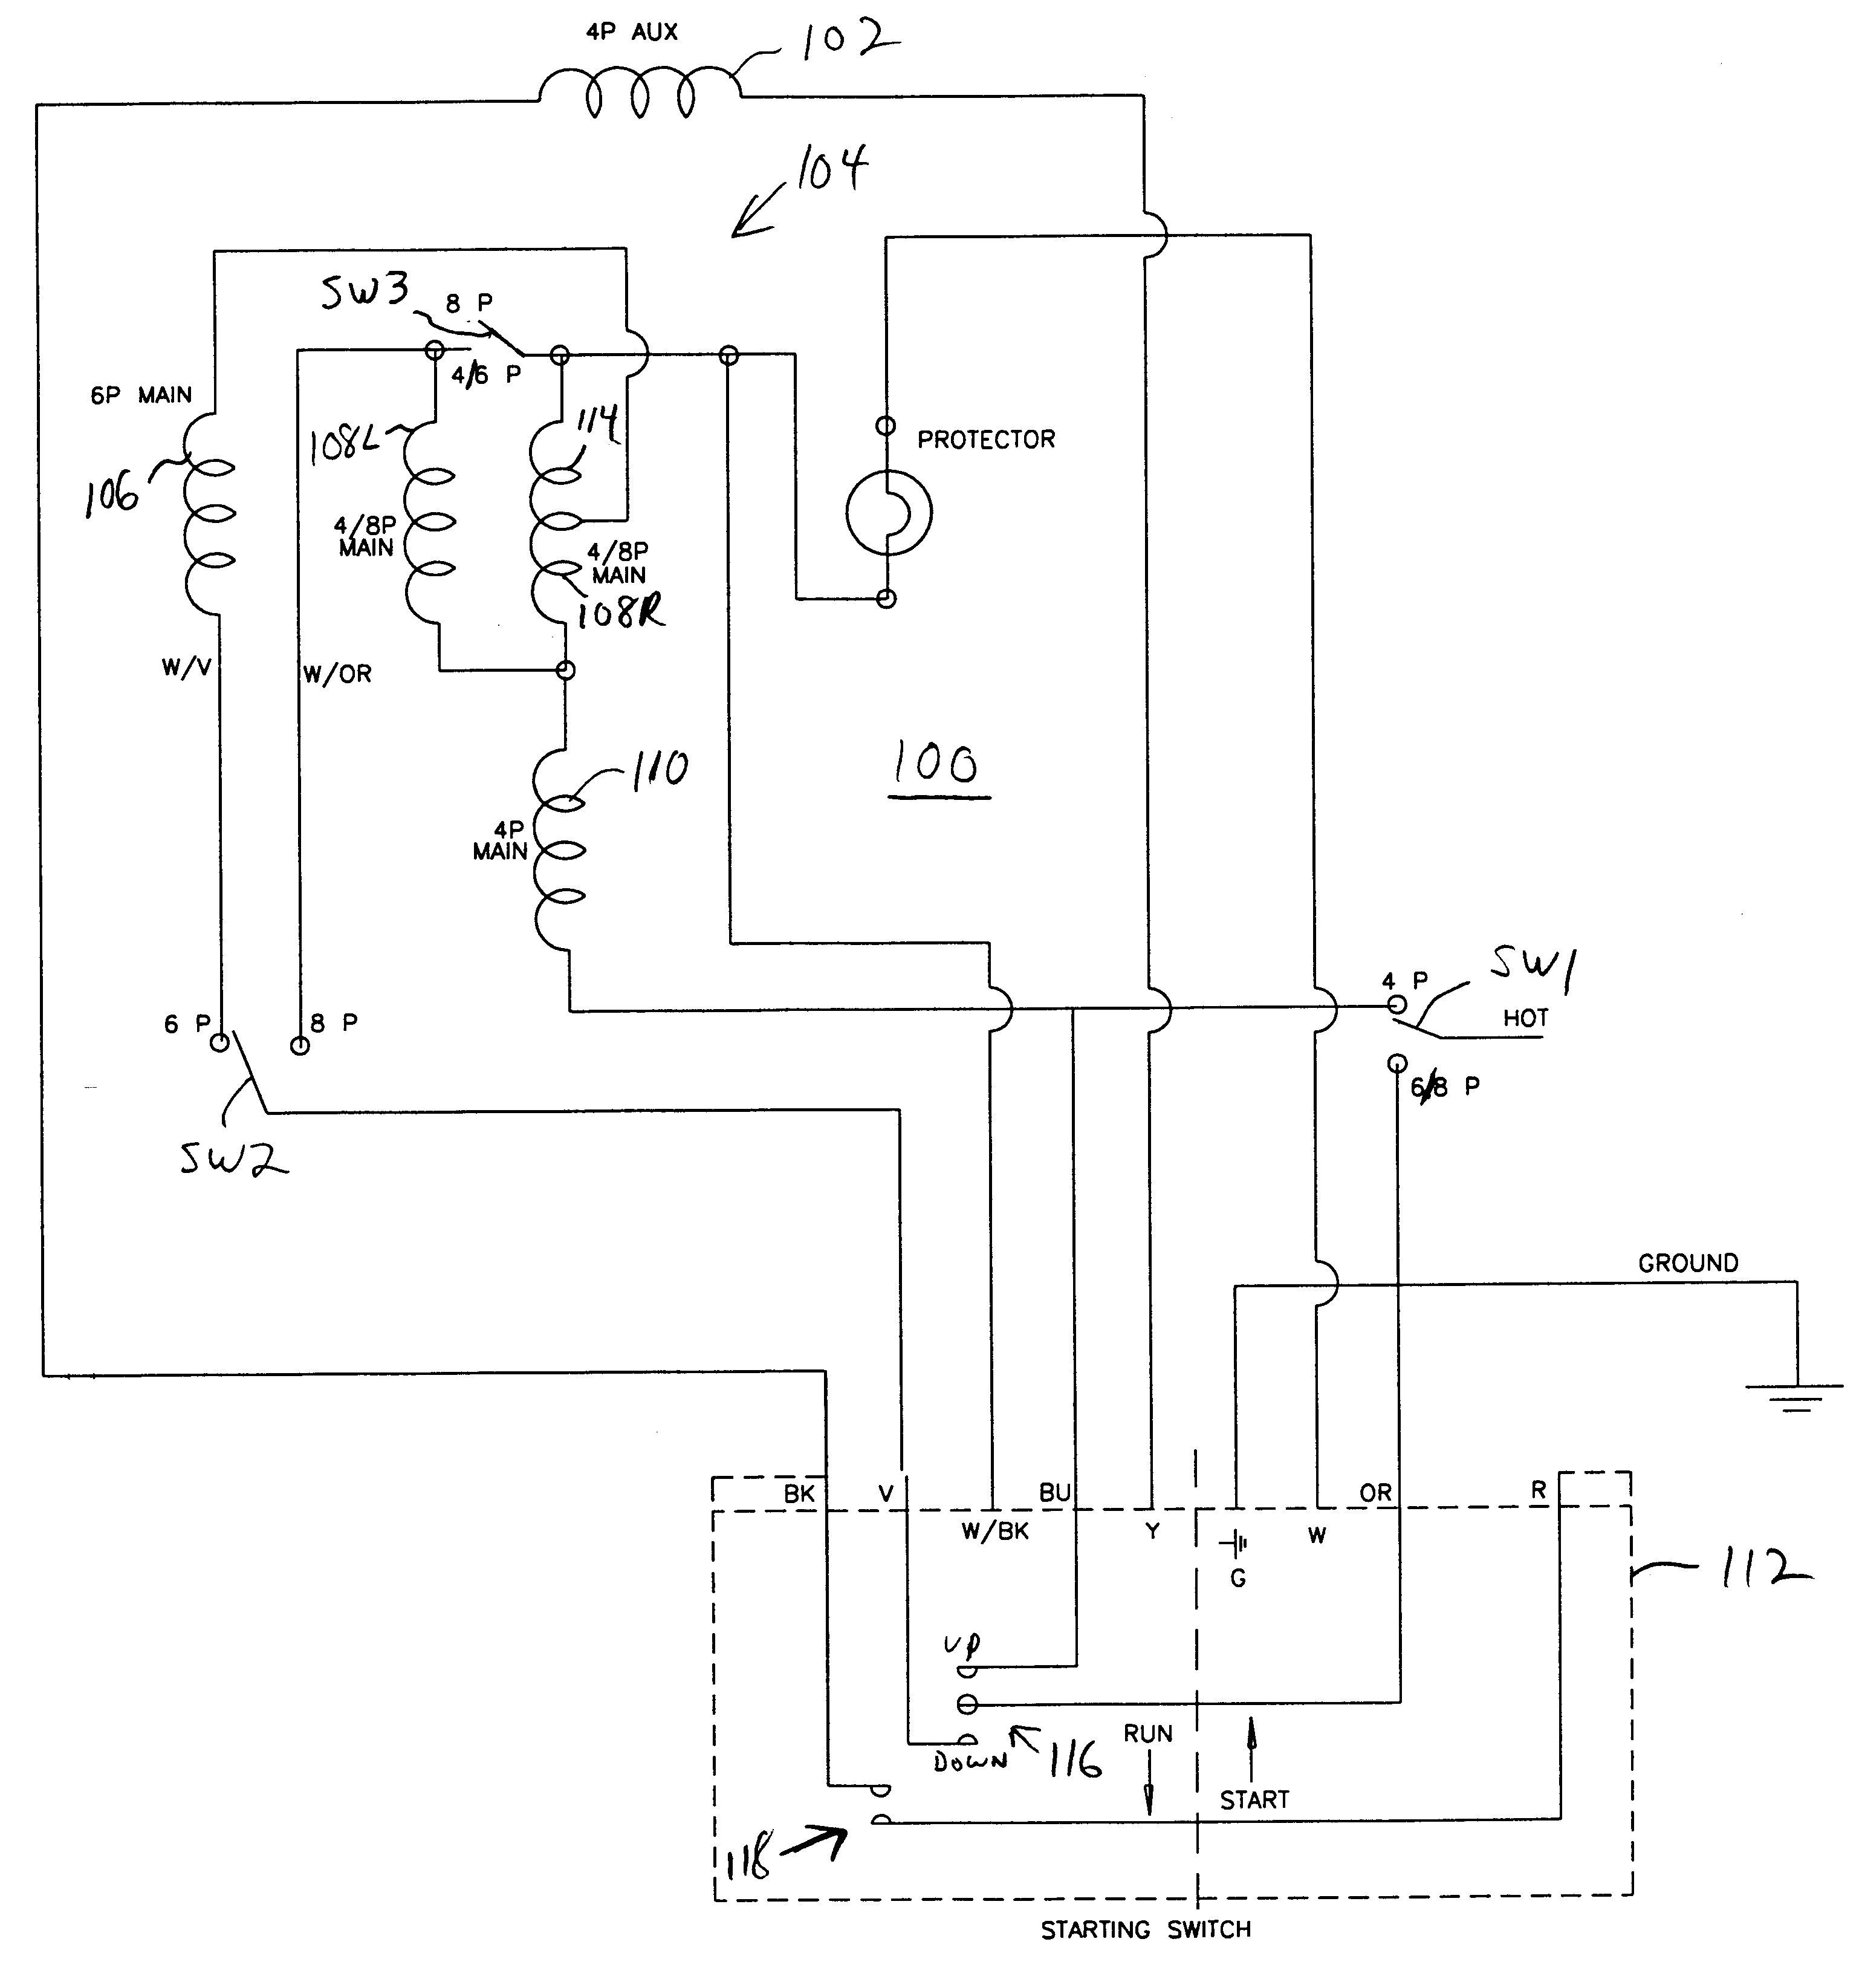 Snorkle M37m Electrical Schematic Four Wire Trailer Harness Schematic Of Snorkle M37m Electrical Schematic